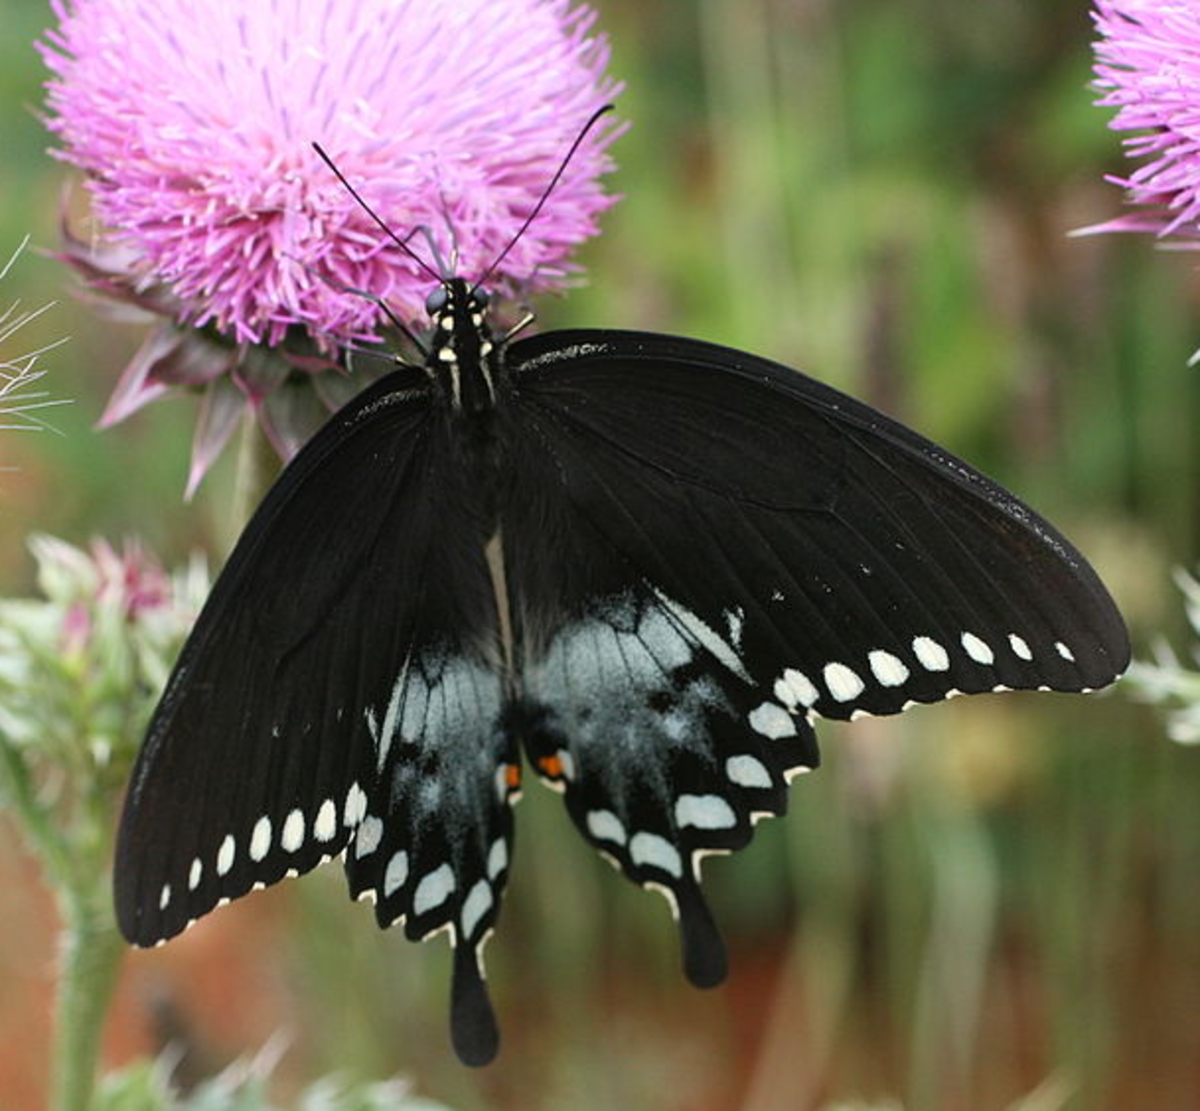 The State Insect of Mississippi: the Spicebush Swallowtail